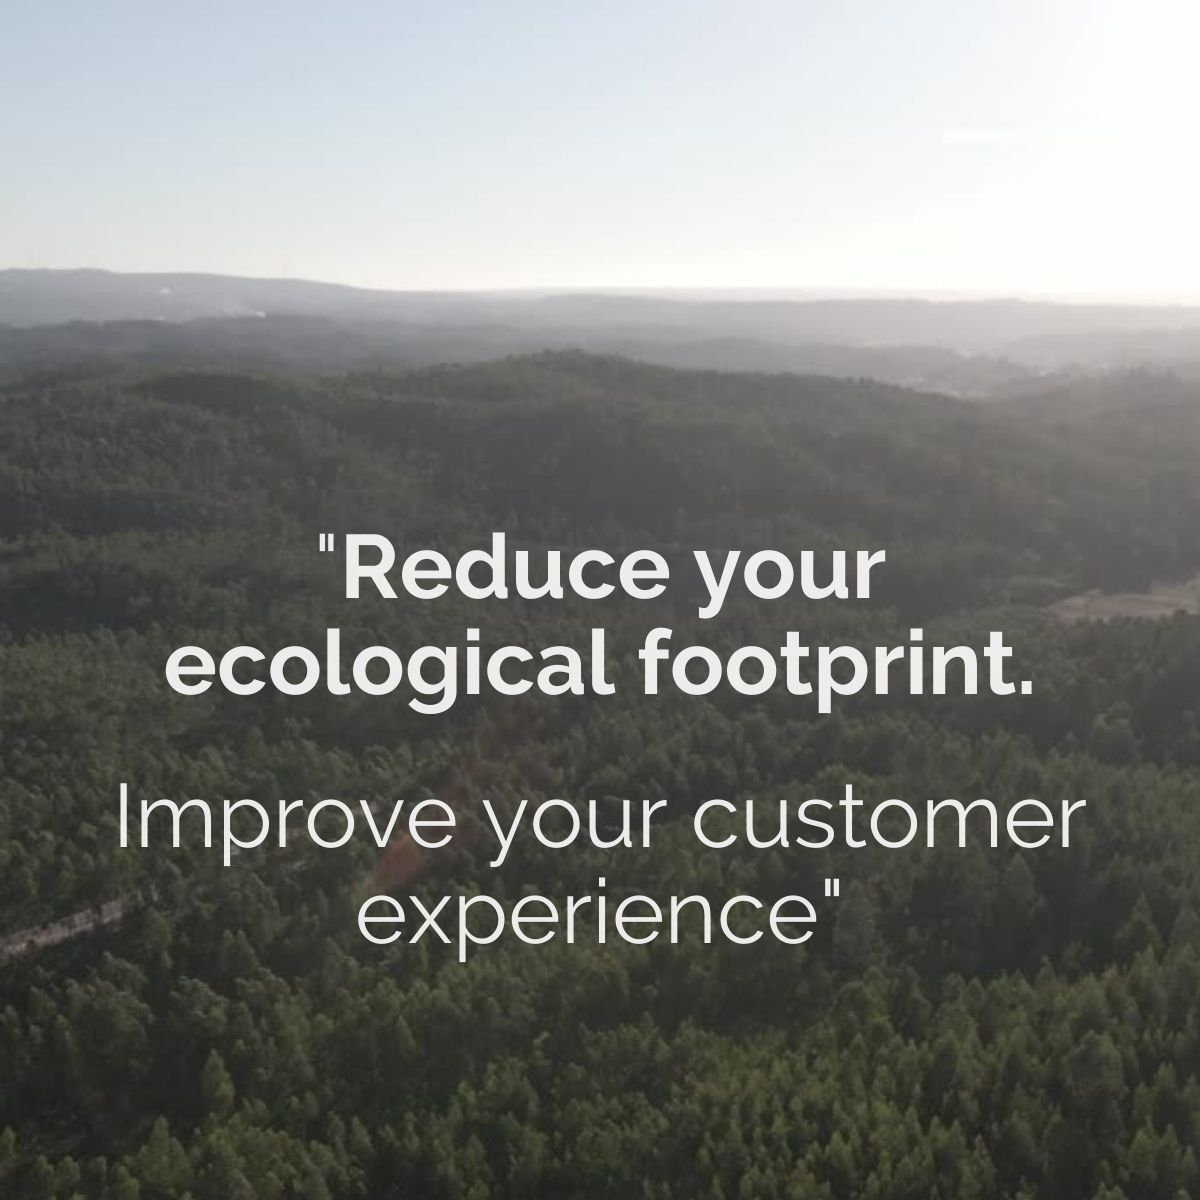 Bournes offer sustainable global mobility programmes in partnership with ecolegIT